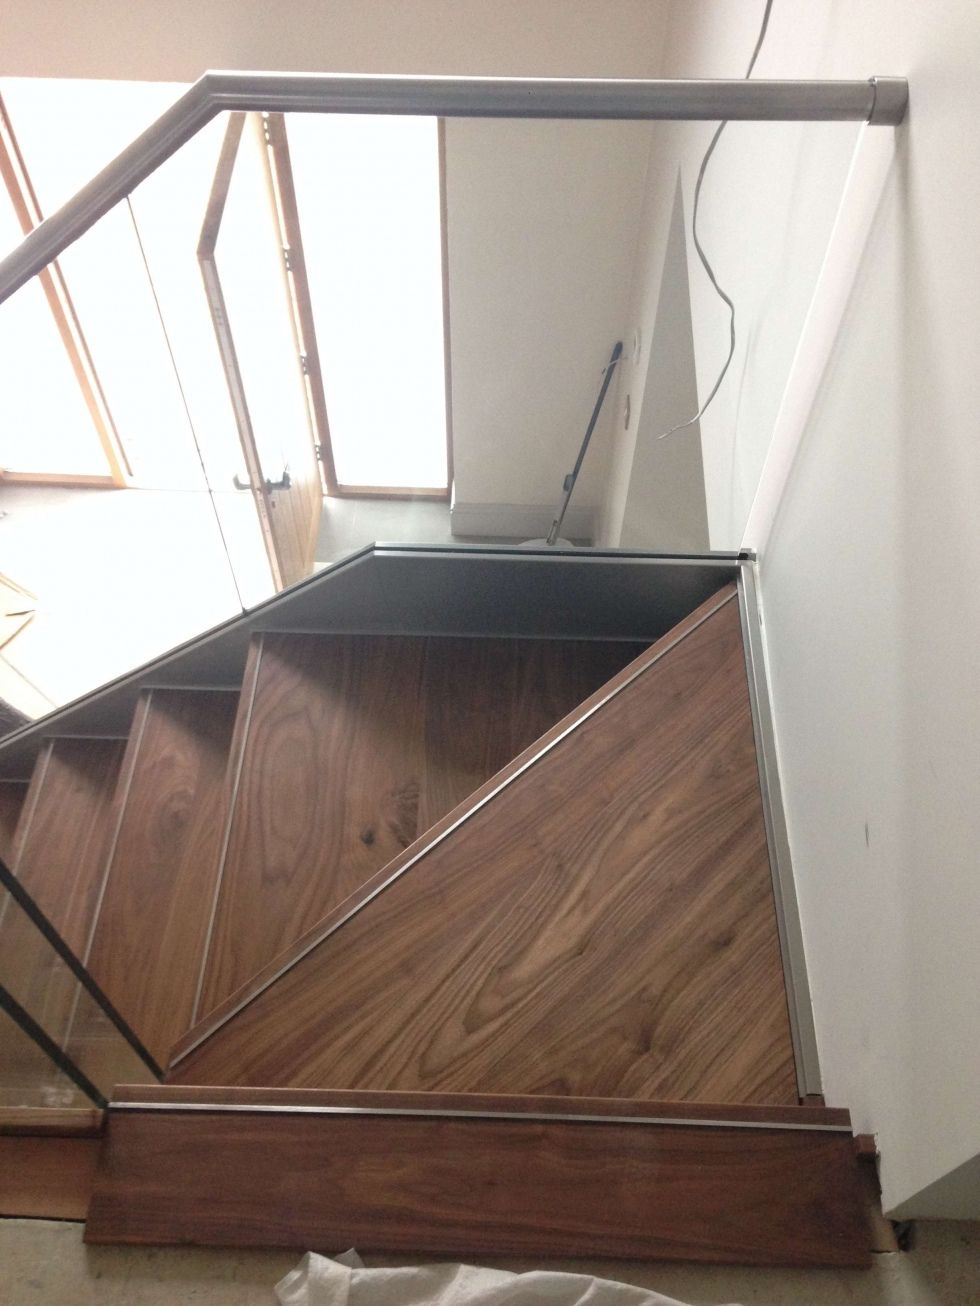 Hidden Fixings Glass Balcony Cantileavered: Walnut & Hidden Fixings Stainless Steel Staircase